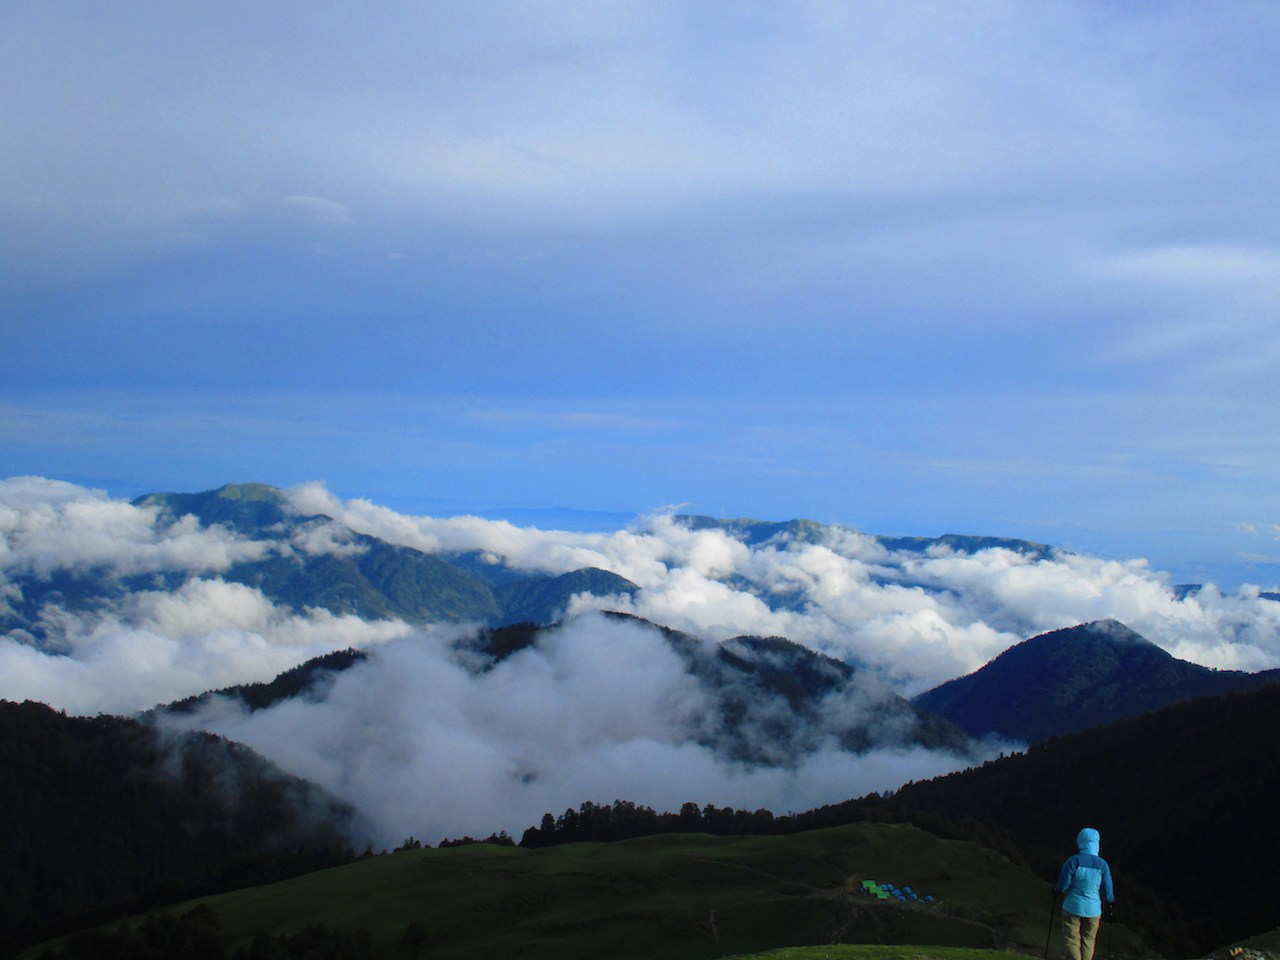 clouds shattering over the hills enroute roopkund